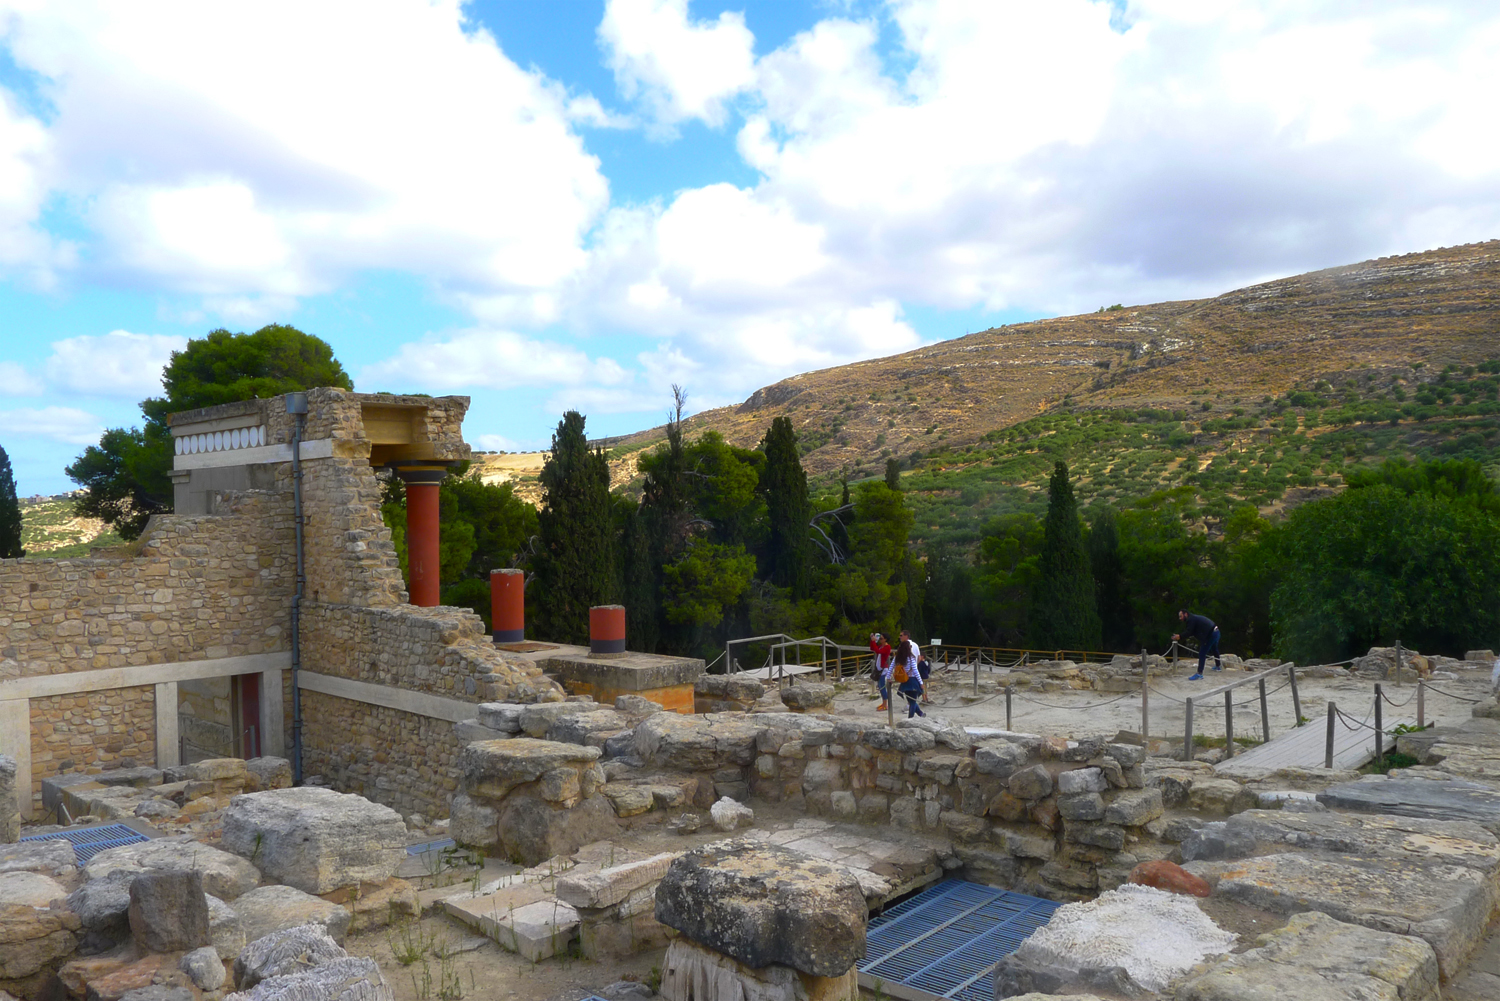 The site at Knossos is massive